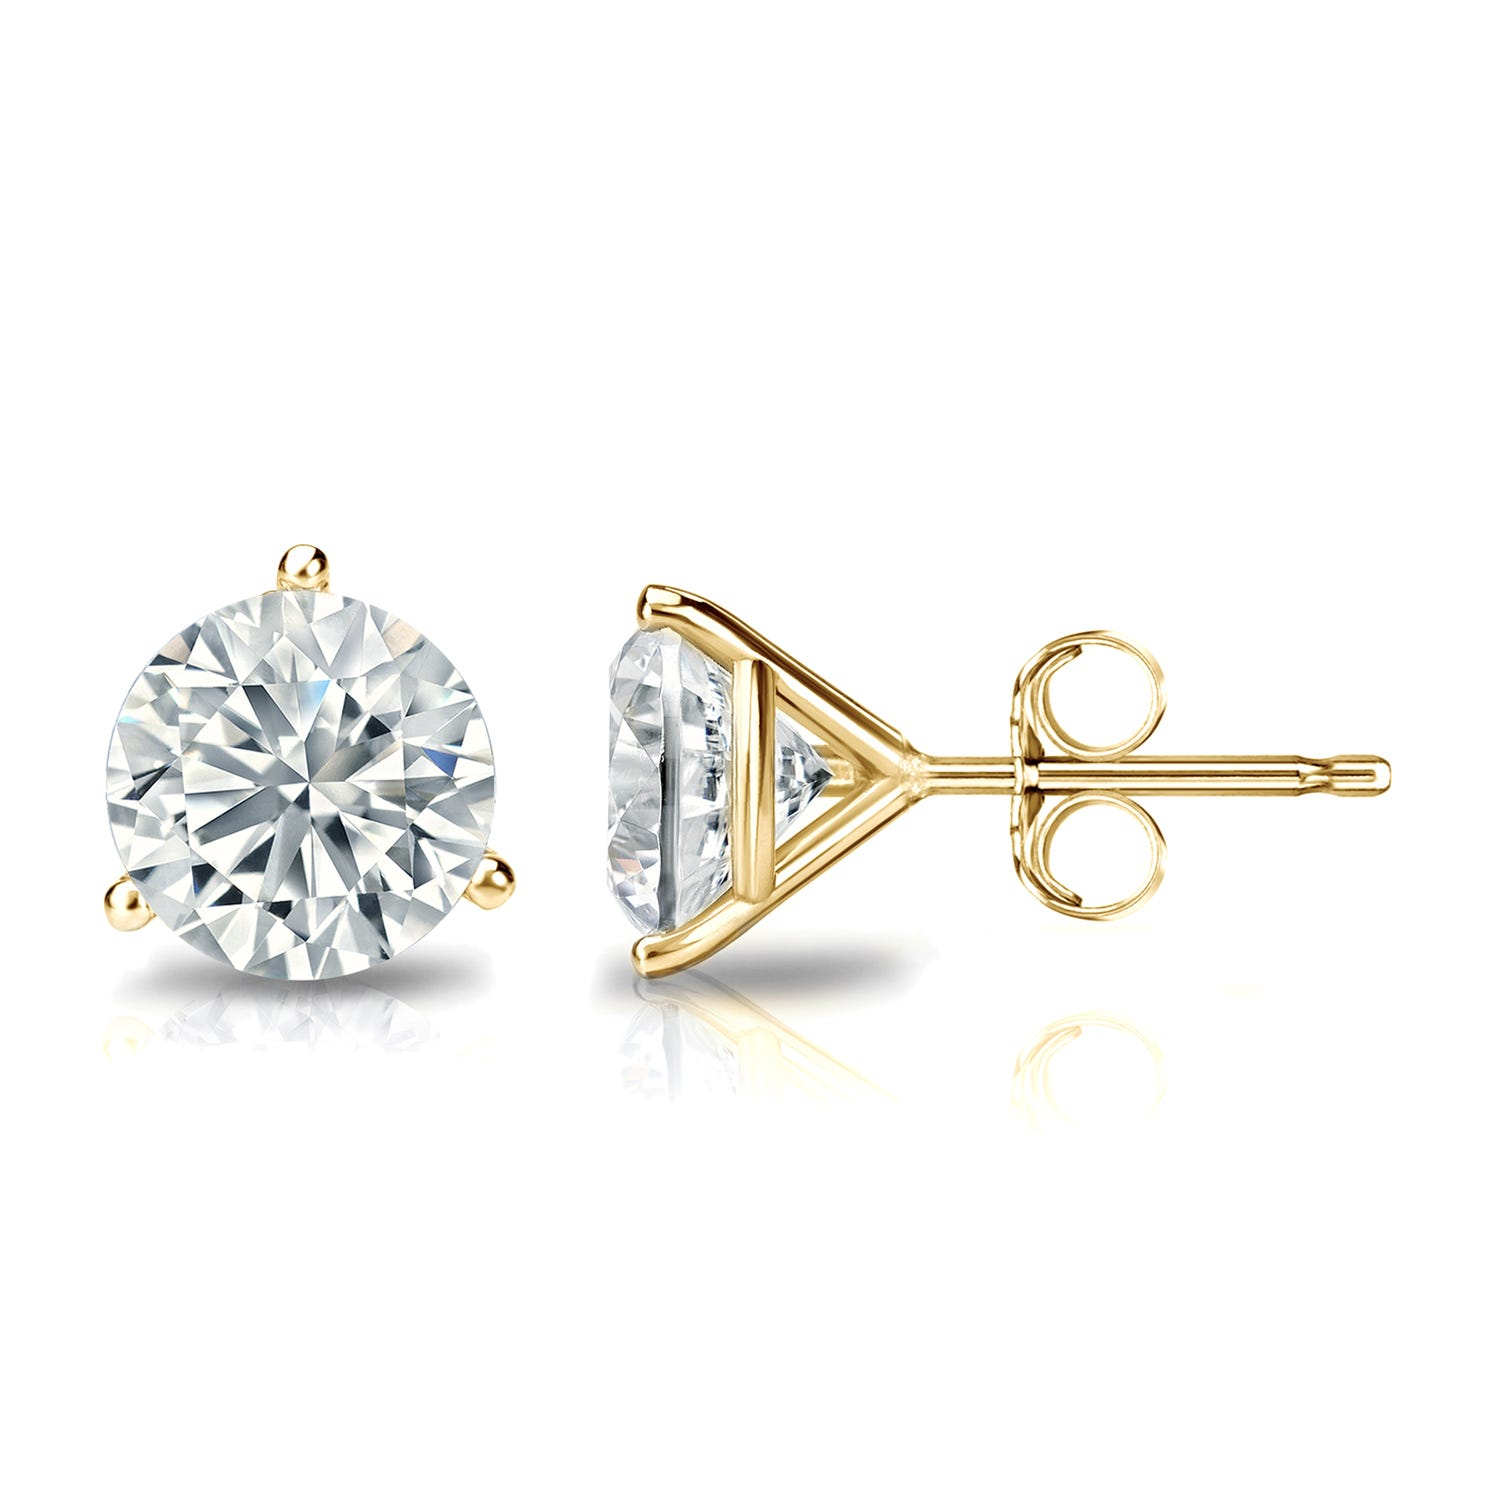 1-1/2 CTTW Round Diamond Solitaire Stud Earrings IJ I1 in 18K Yellow Gold IGI Certified 3-Prong Setting